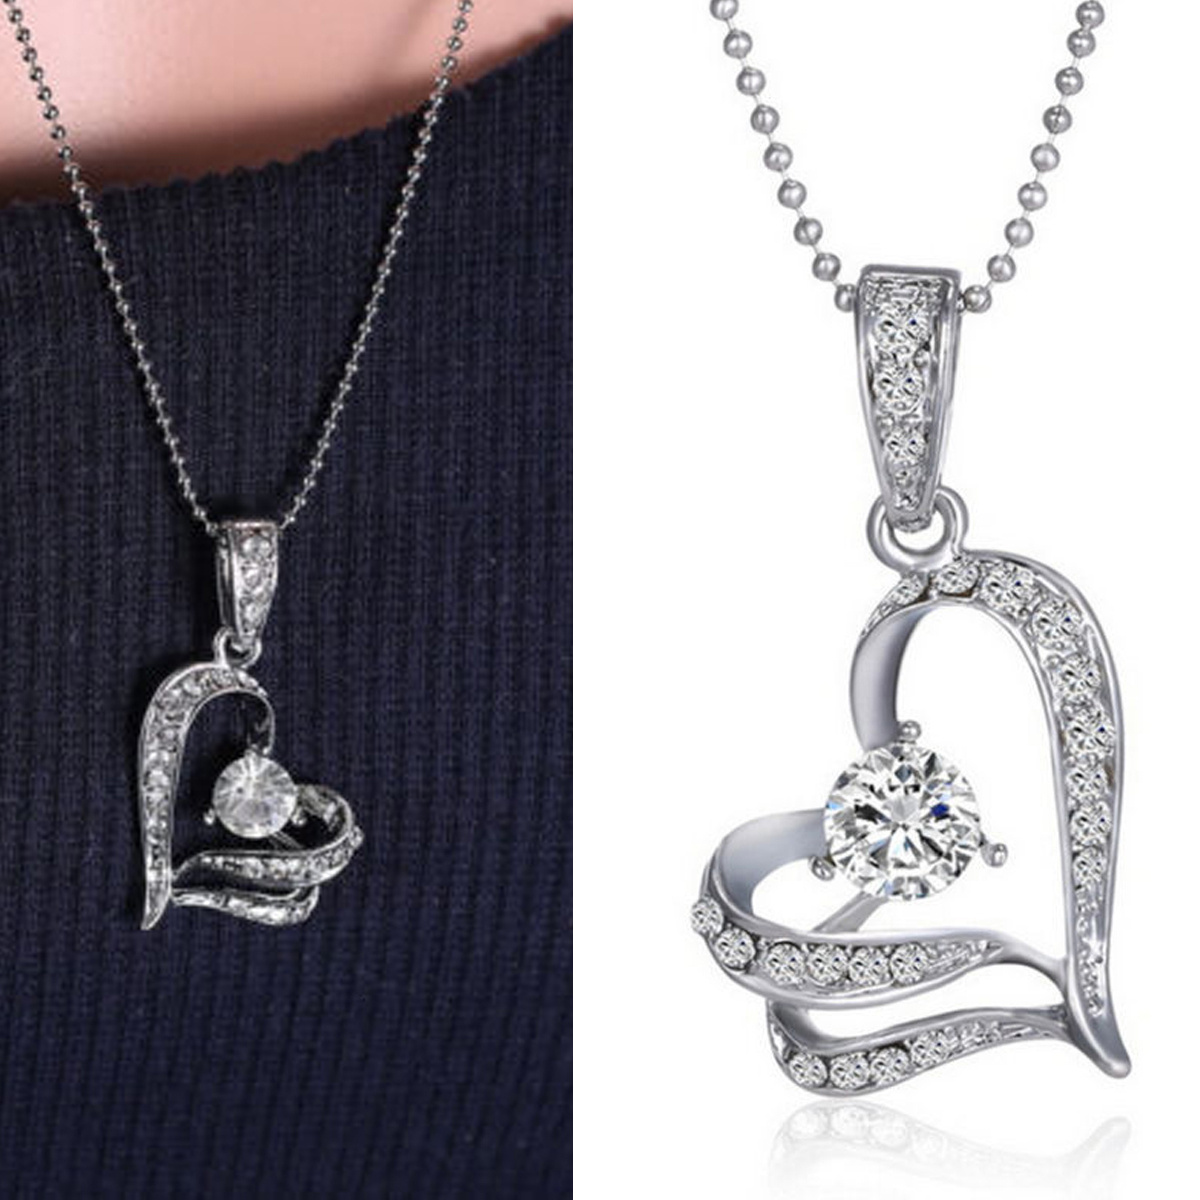 Womens Crystal Rhinestone Heart Pendant Necklace Silver Chain Hollow Double Love Heart Collares Sttatement Necklace Jewelry Gift